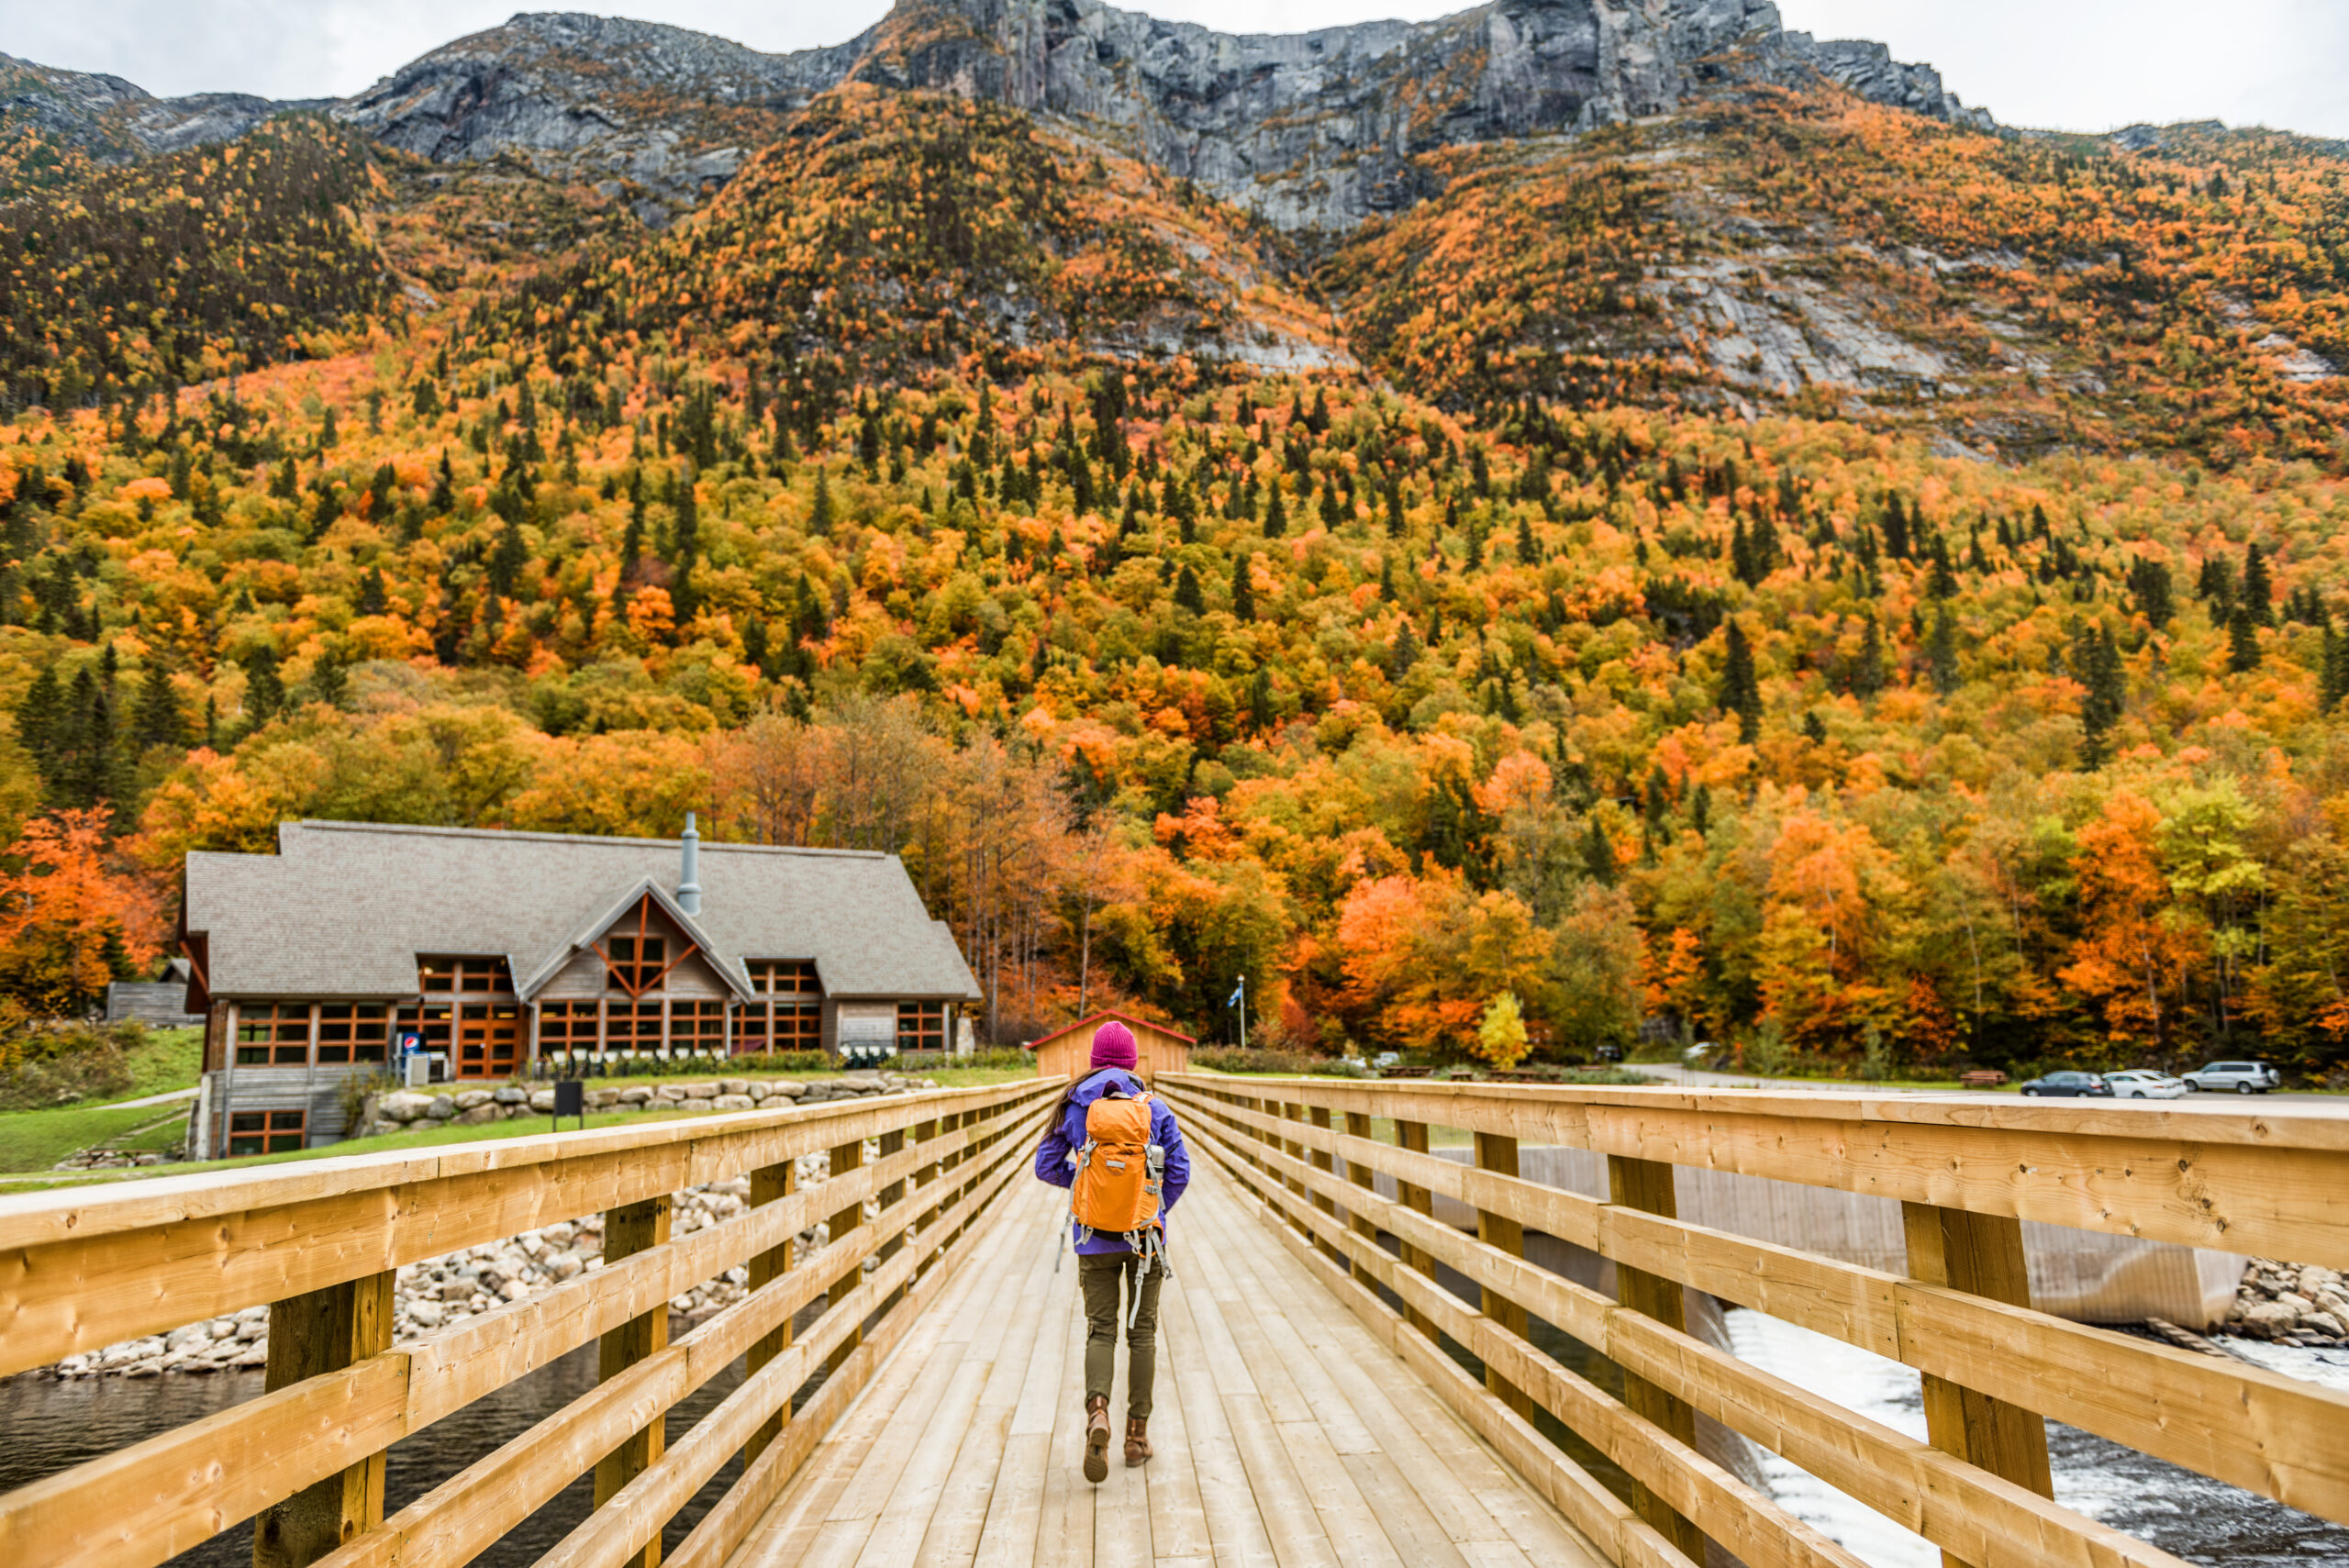 there are so many hiking opportunities in canada to see the fall foliage in all of its glory